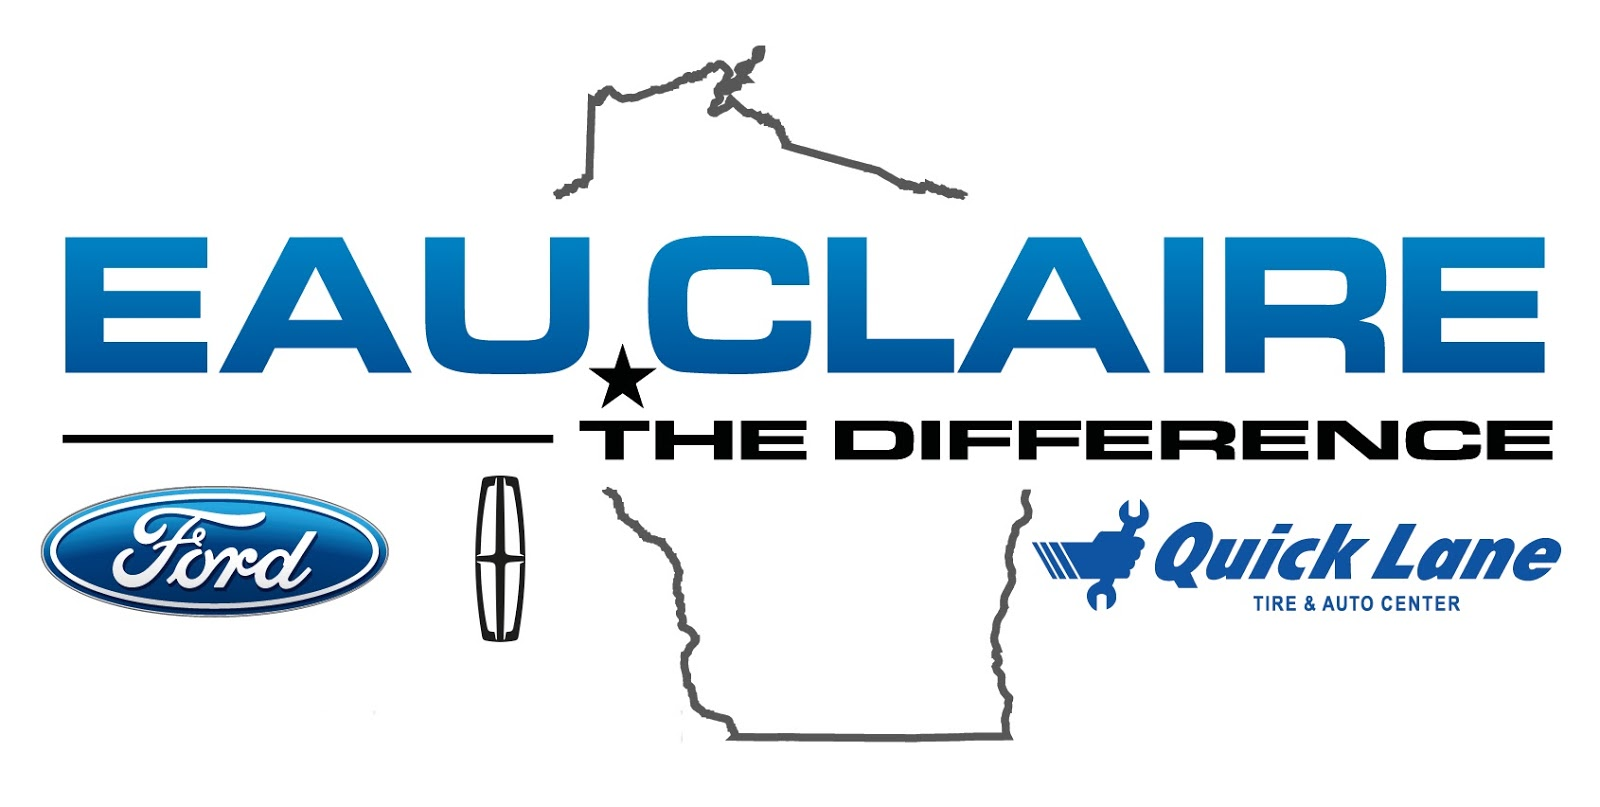 Click Here and Like Eau Claire Ford Lincoln Quick Lane on Facebook!  sc 1 st  Eau Claire Ford Lincoln Quick Lane Nice News - blogger & Eau Claire Ford Lincoln Quick Lane Nice News: January 2017 markmcfarlin.com